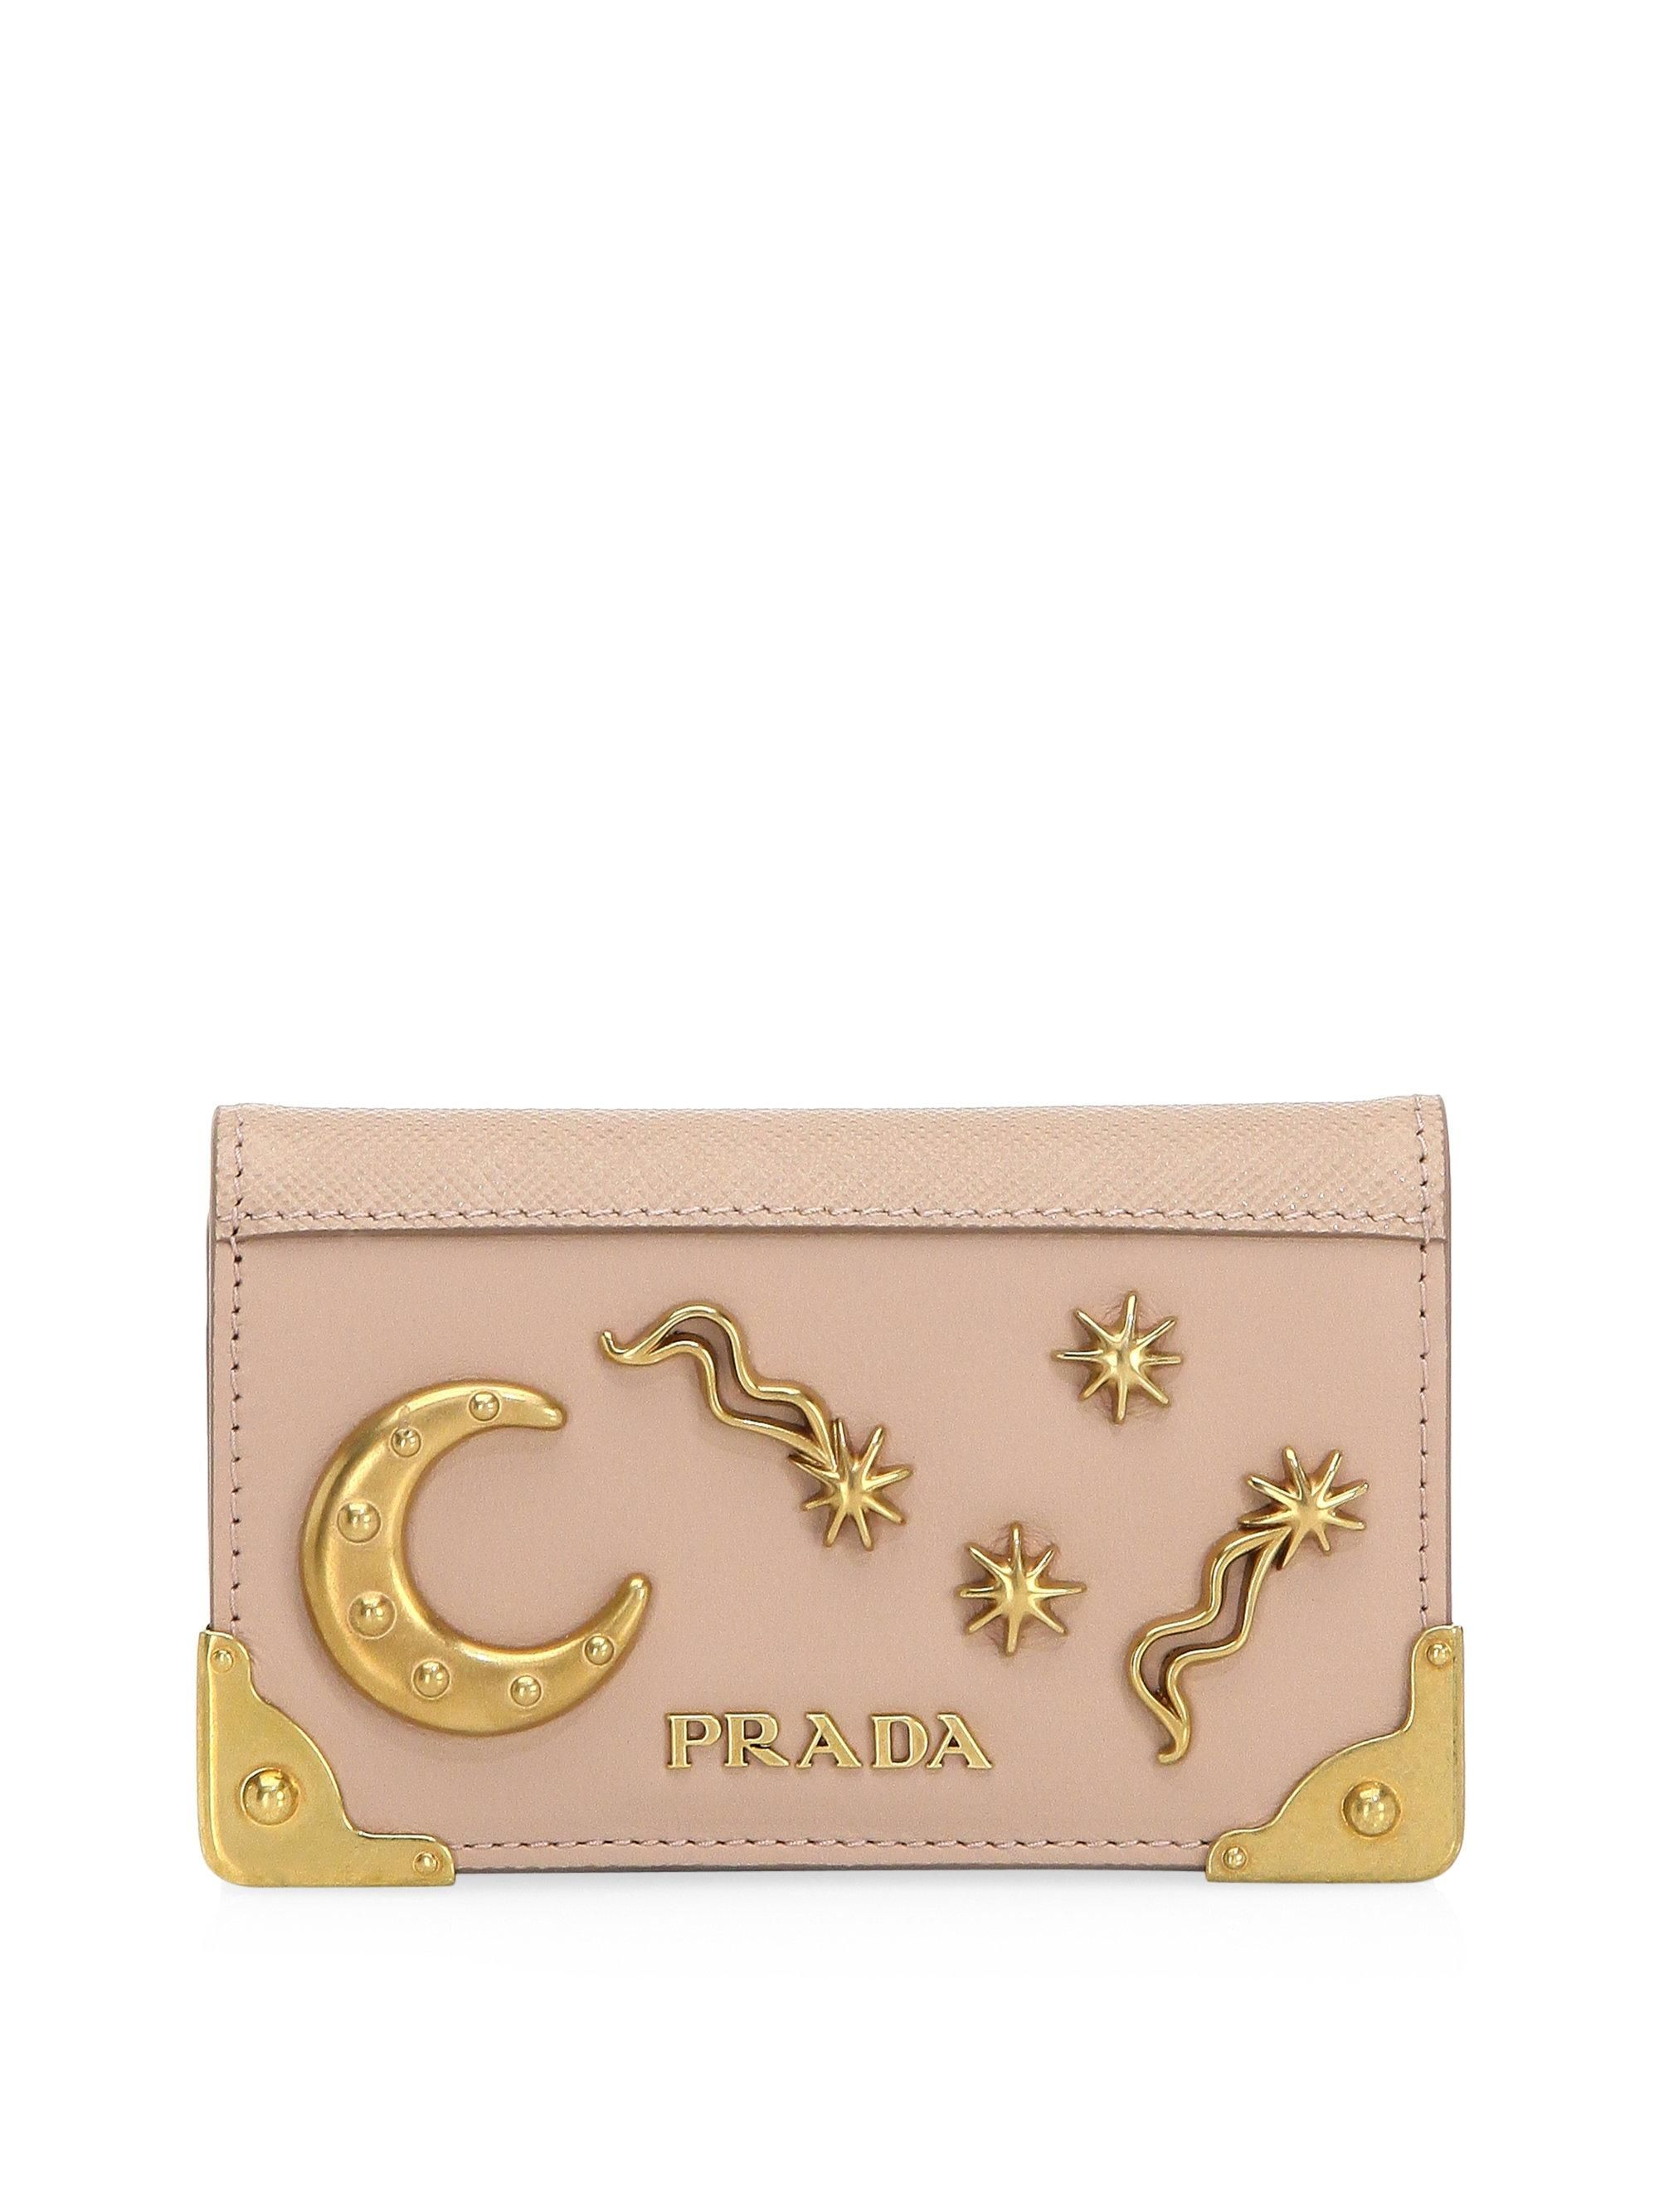 d49c2385b08eb8 Image result for Prada Cahier Leather Card Case with moon and stars ...